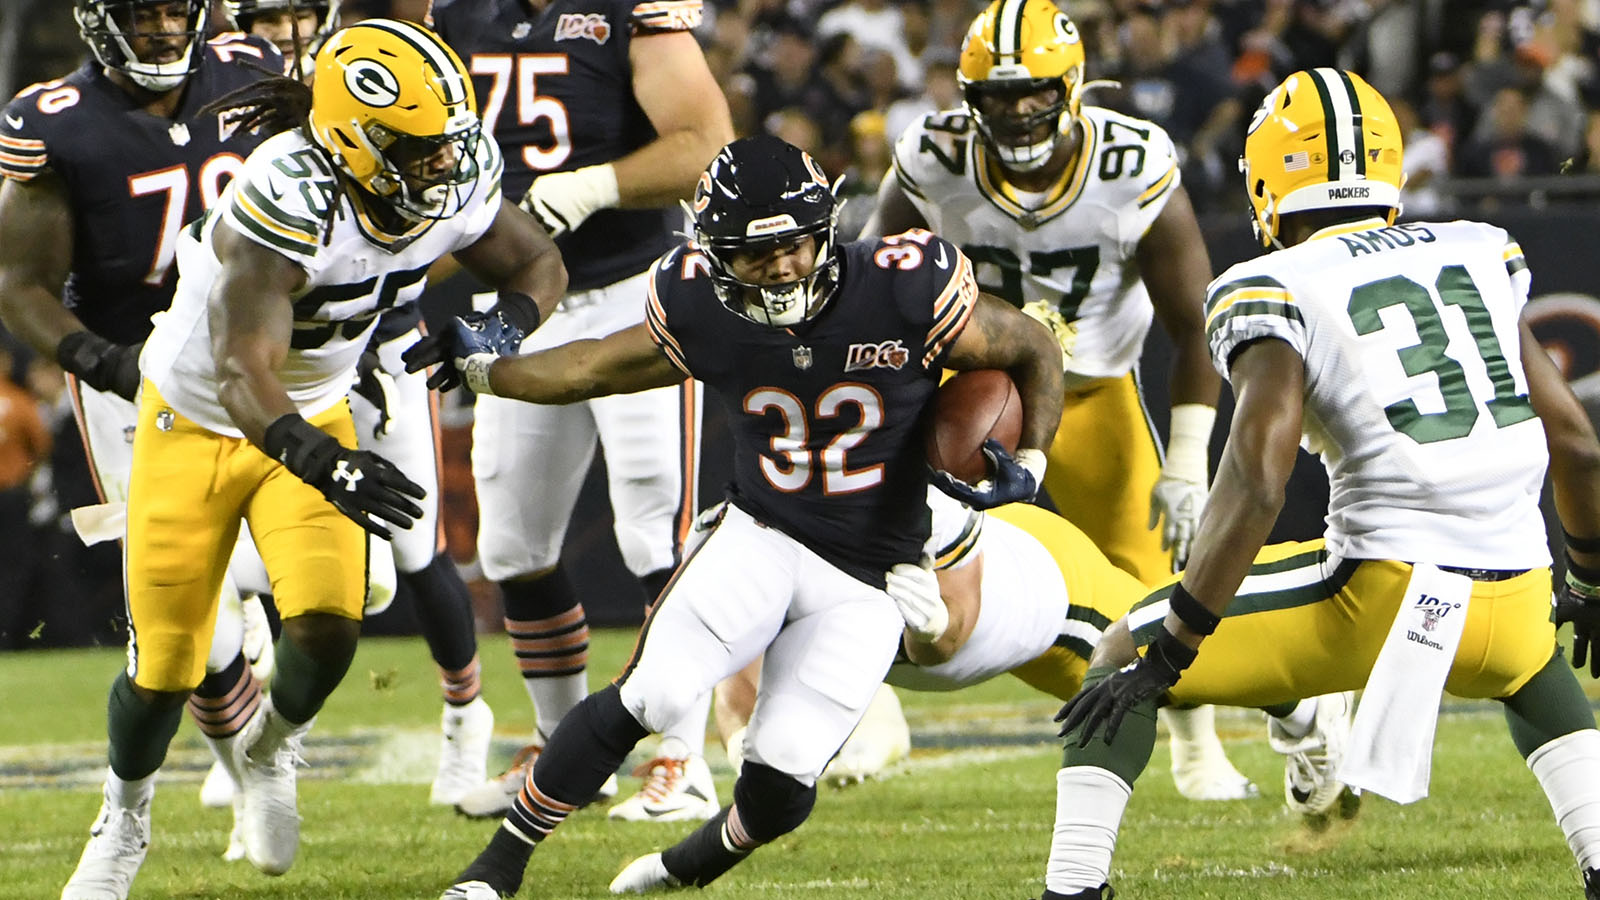 Chicago Bears' David Montgomery runs during the first half of an NFL football game against the Green Bay Packers Thursday, Sept. 5, 2019, in Chicago. (AP Photo/David Banks)